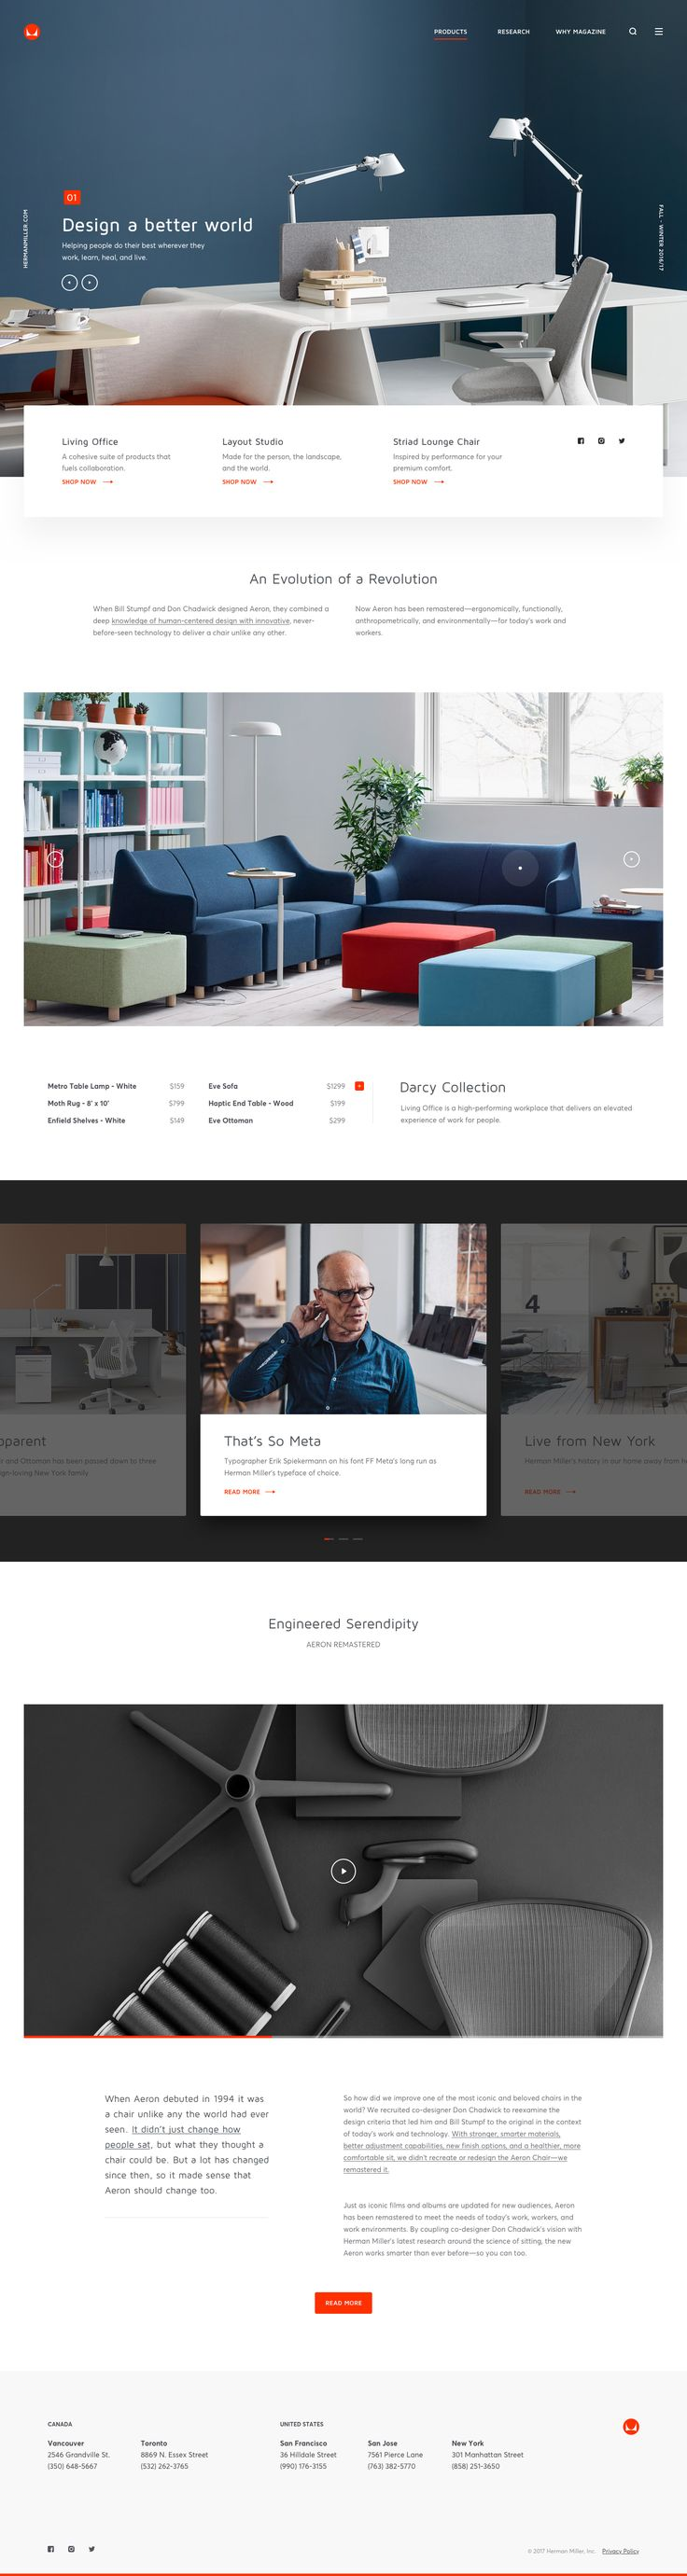 Herman Miller - Home 1.0 by Andrew Baygulov | dribbble